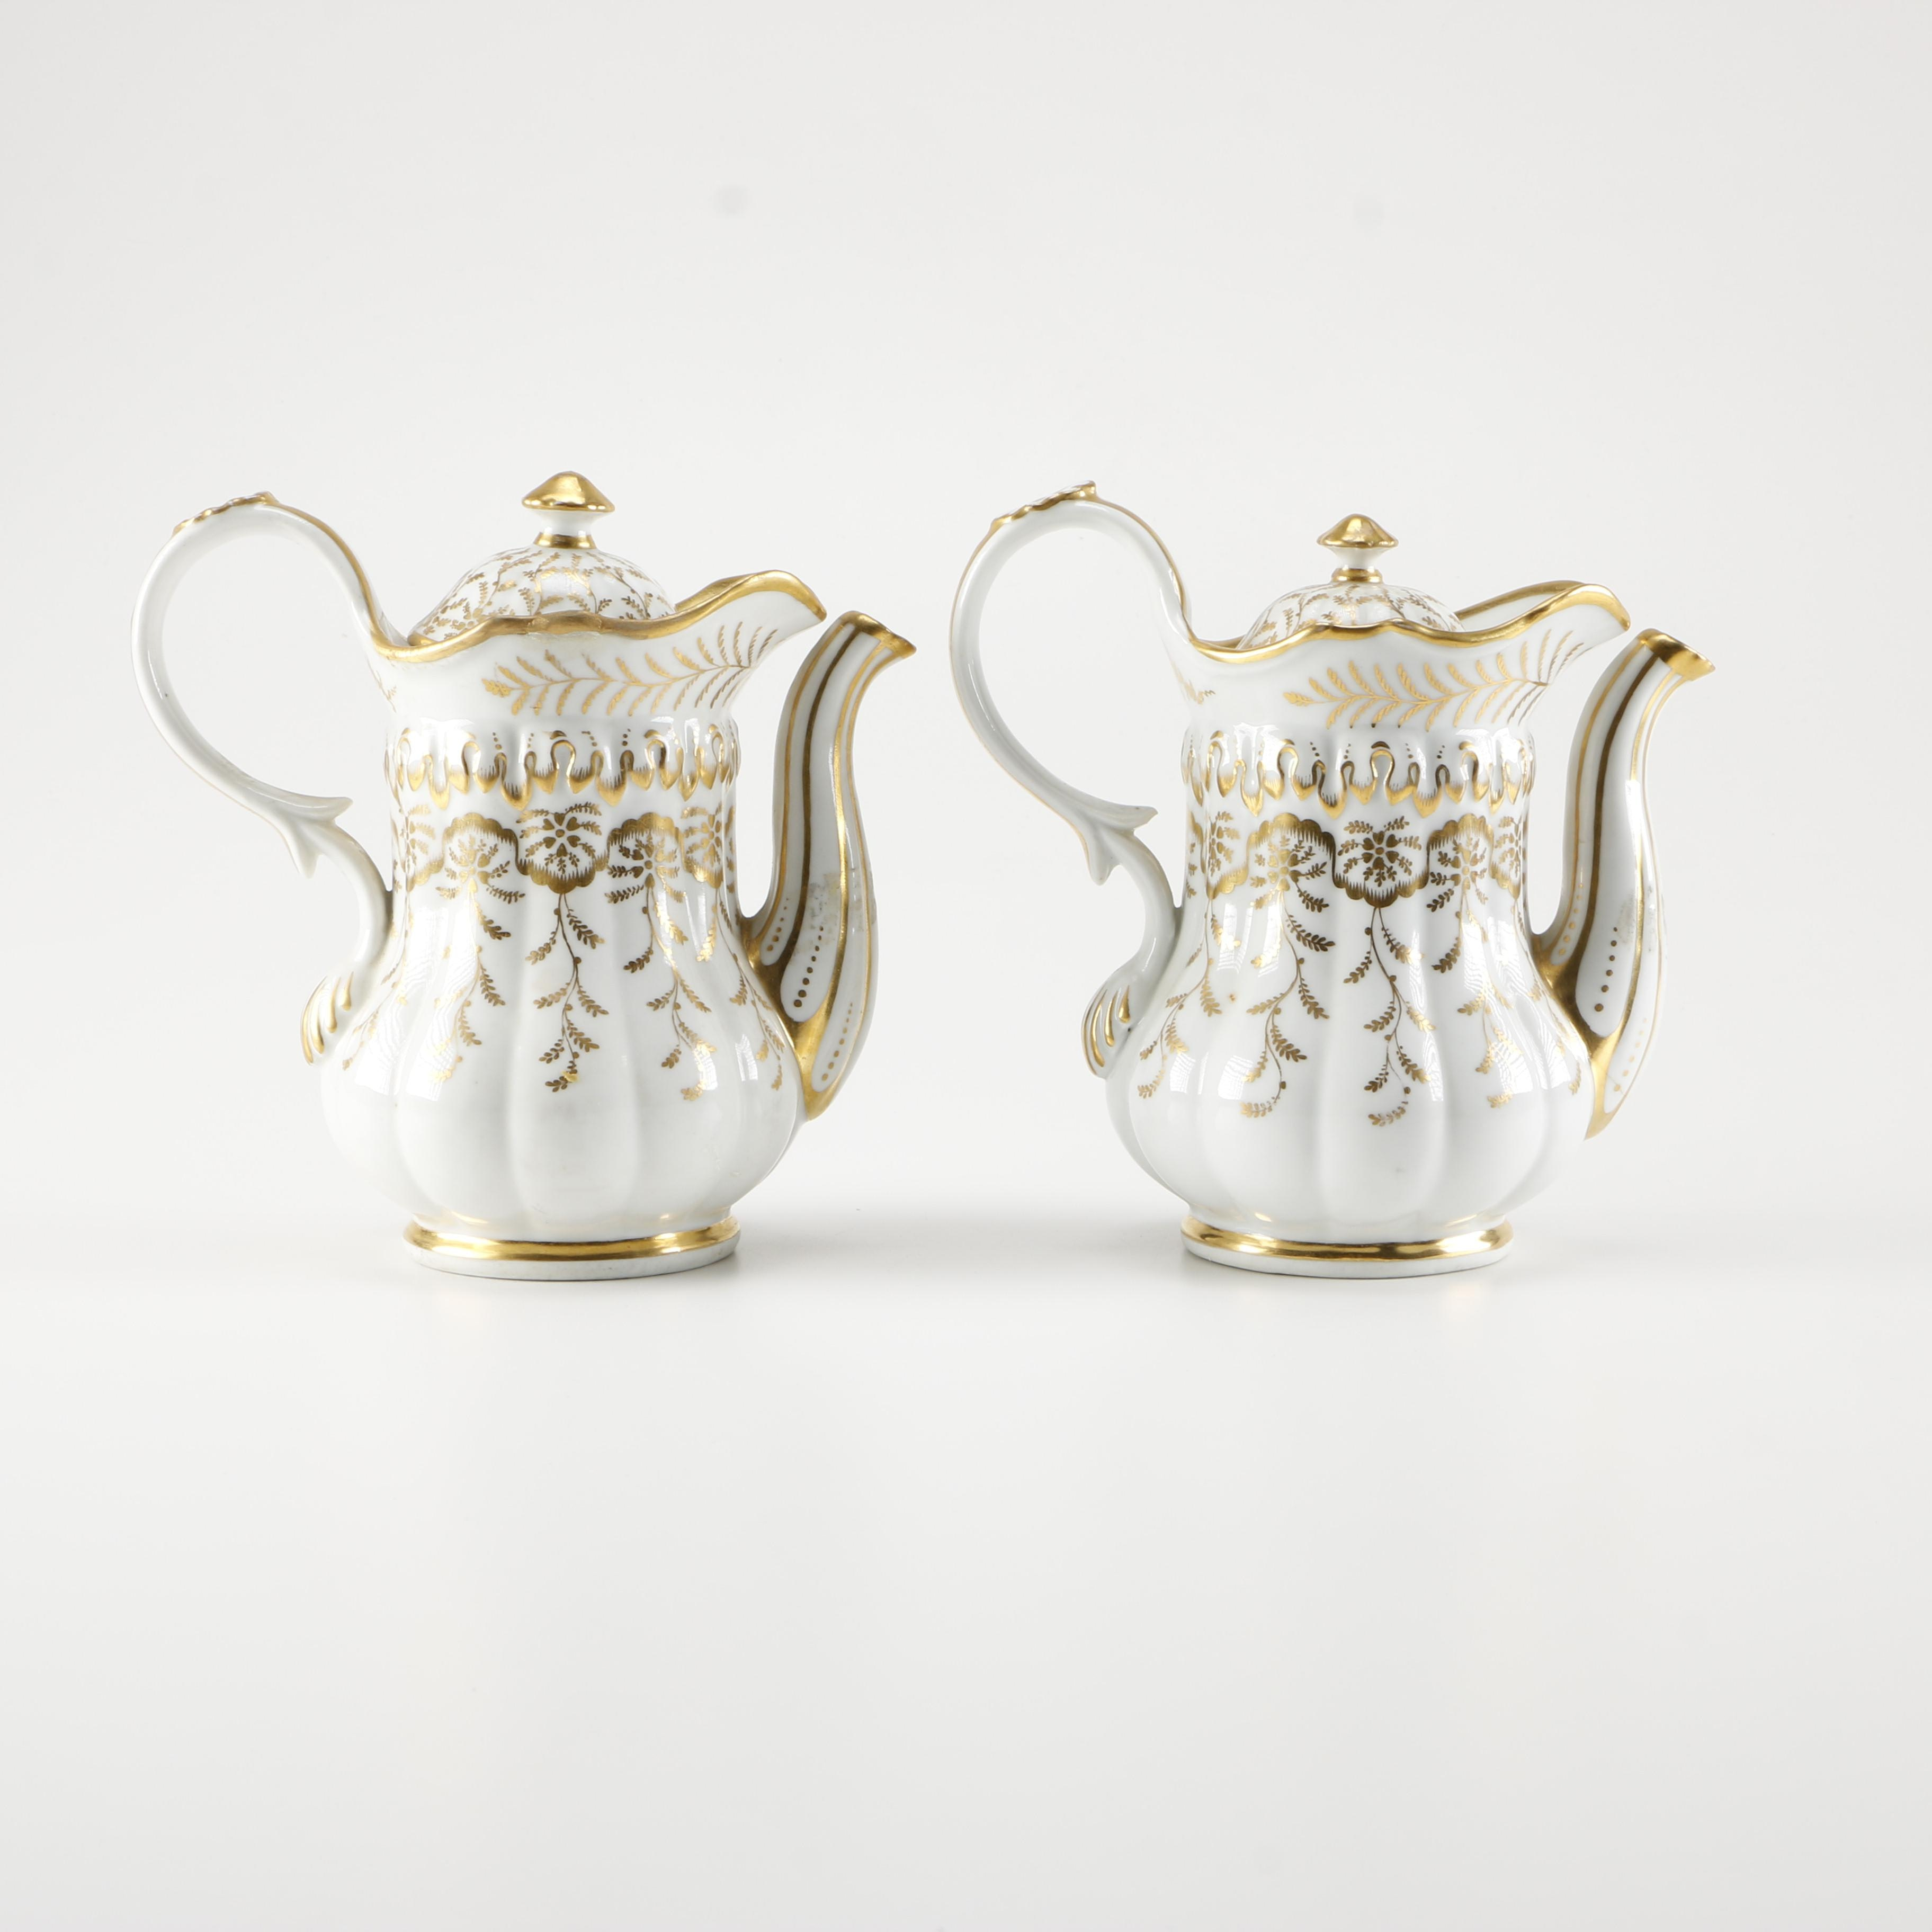 White and Gold Gilt Ceramic Coffee Pots